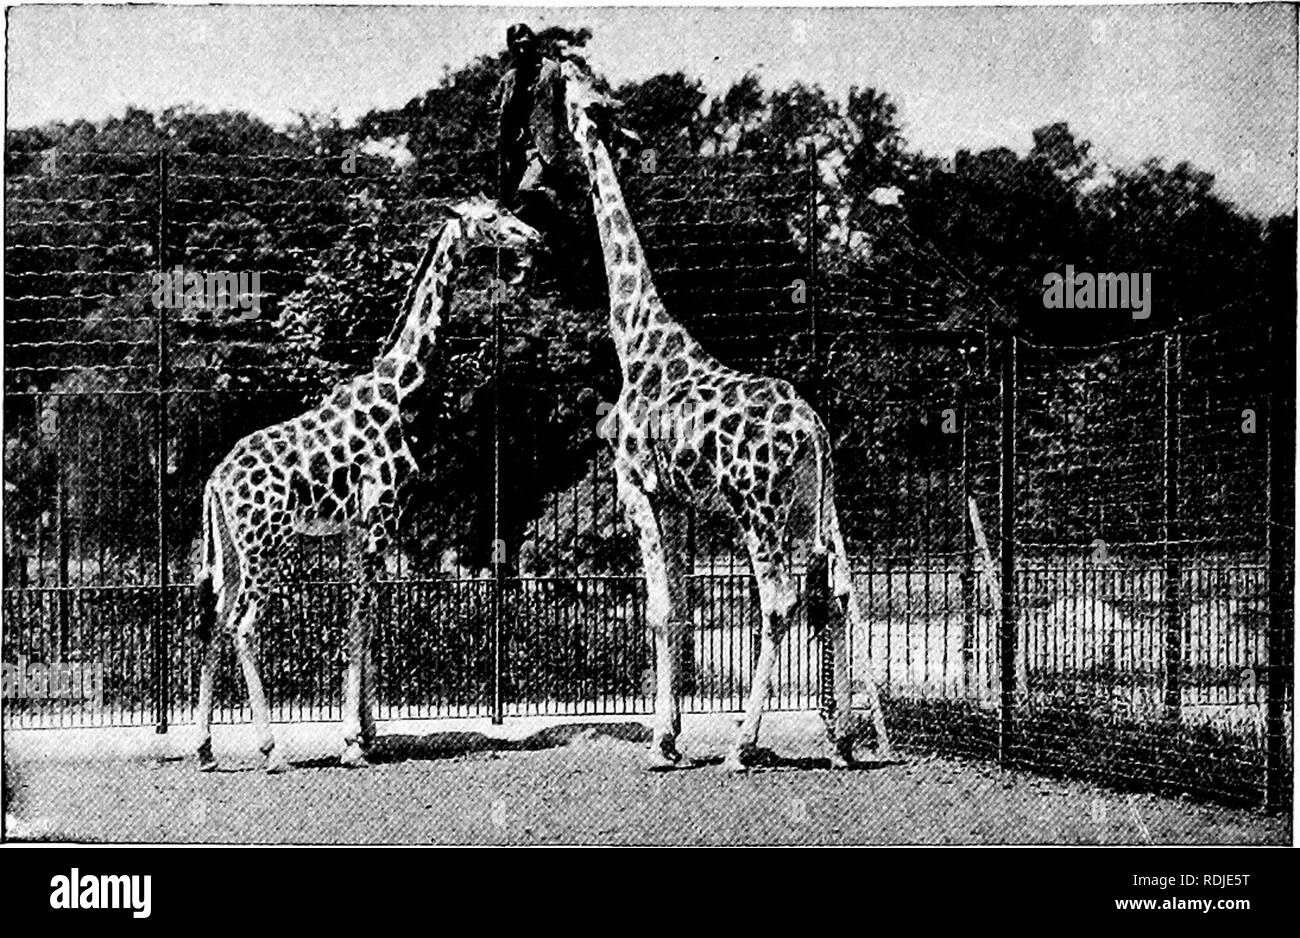 Famous Animal Black and White Stock Photos & Images - Alamy